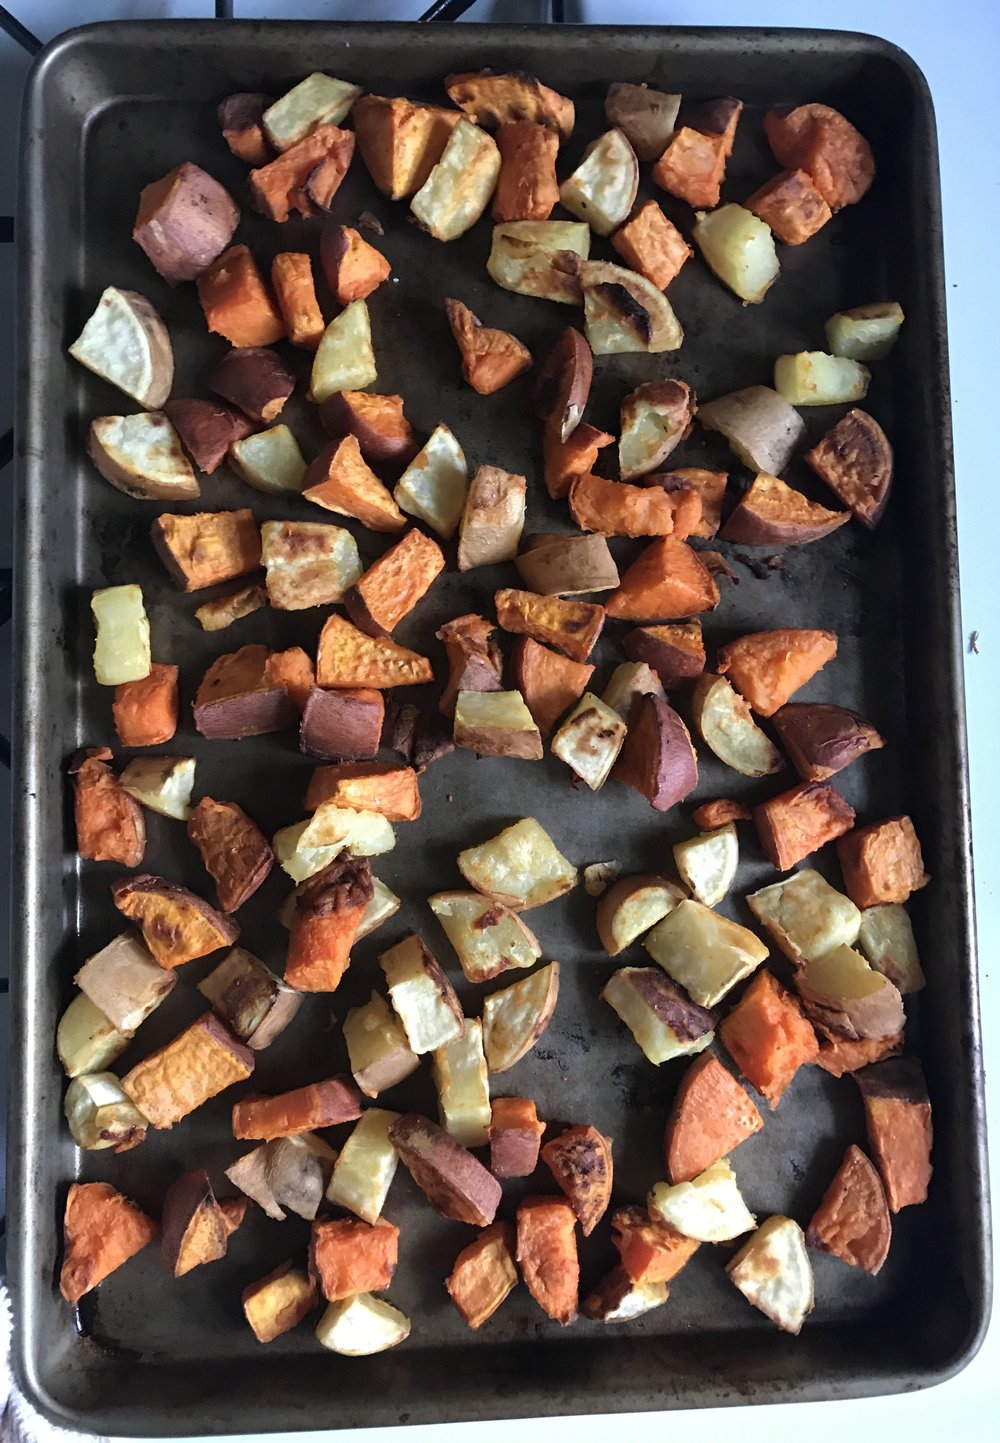 Sweet potatoes are back, I've been eating these by the handful. Tossed in coconut oil and sea salt and roasted for 45 mins at 400 F